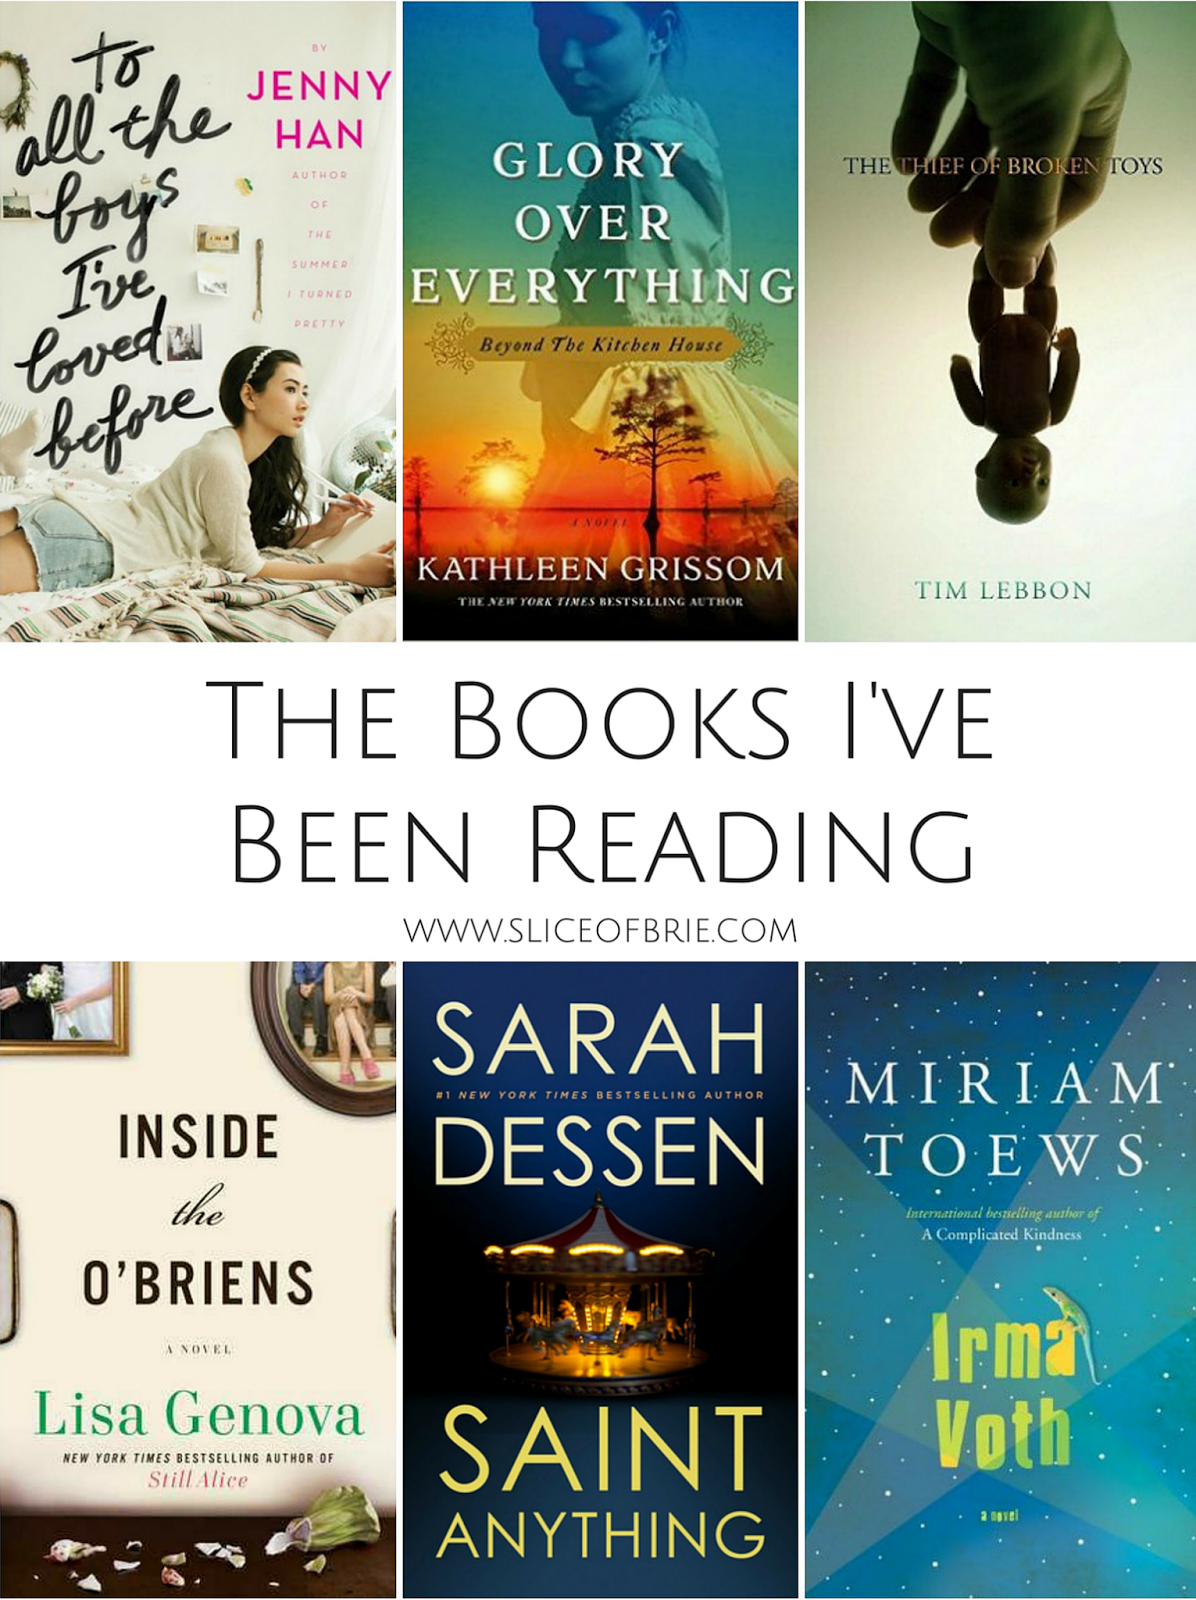 The Books I've Been Reading - Short Book Reviews on Books for Adults